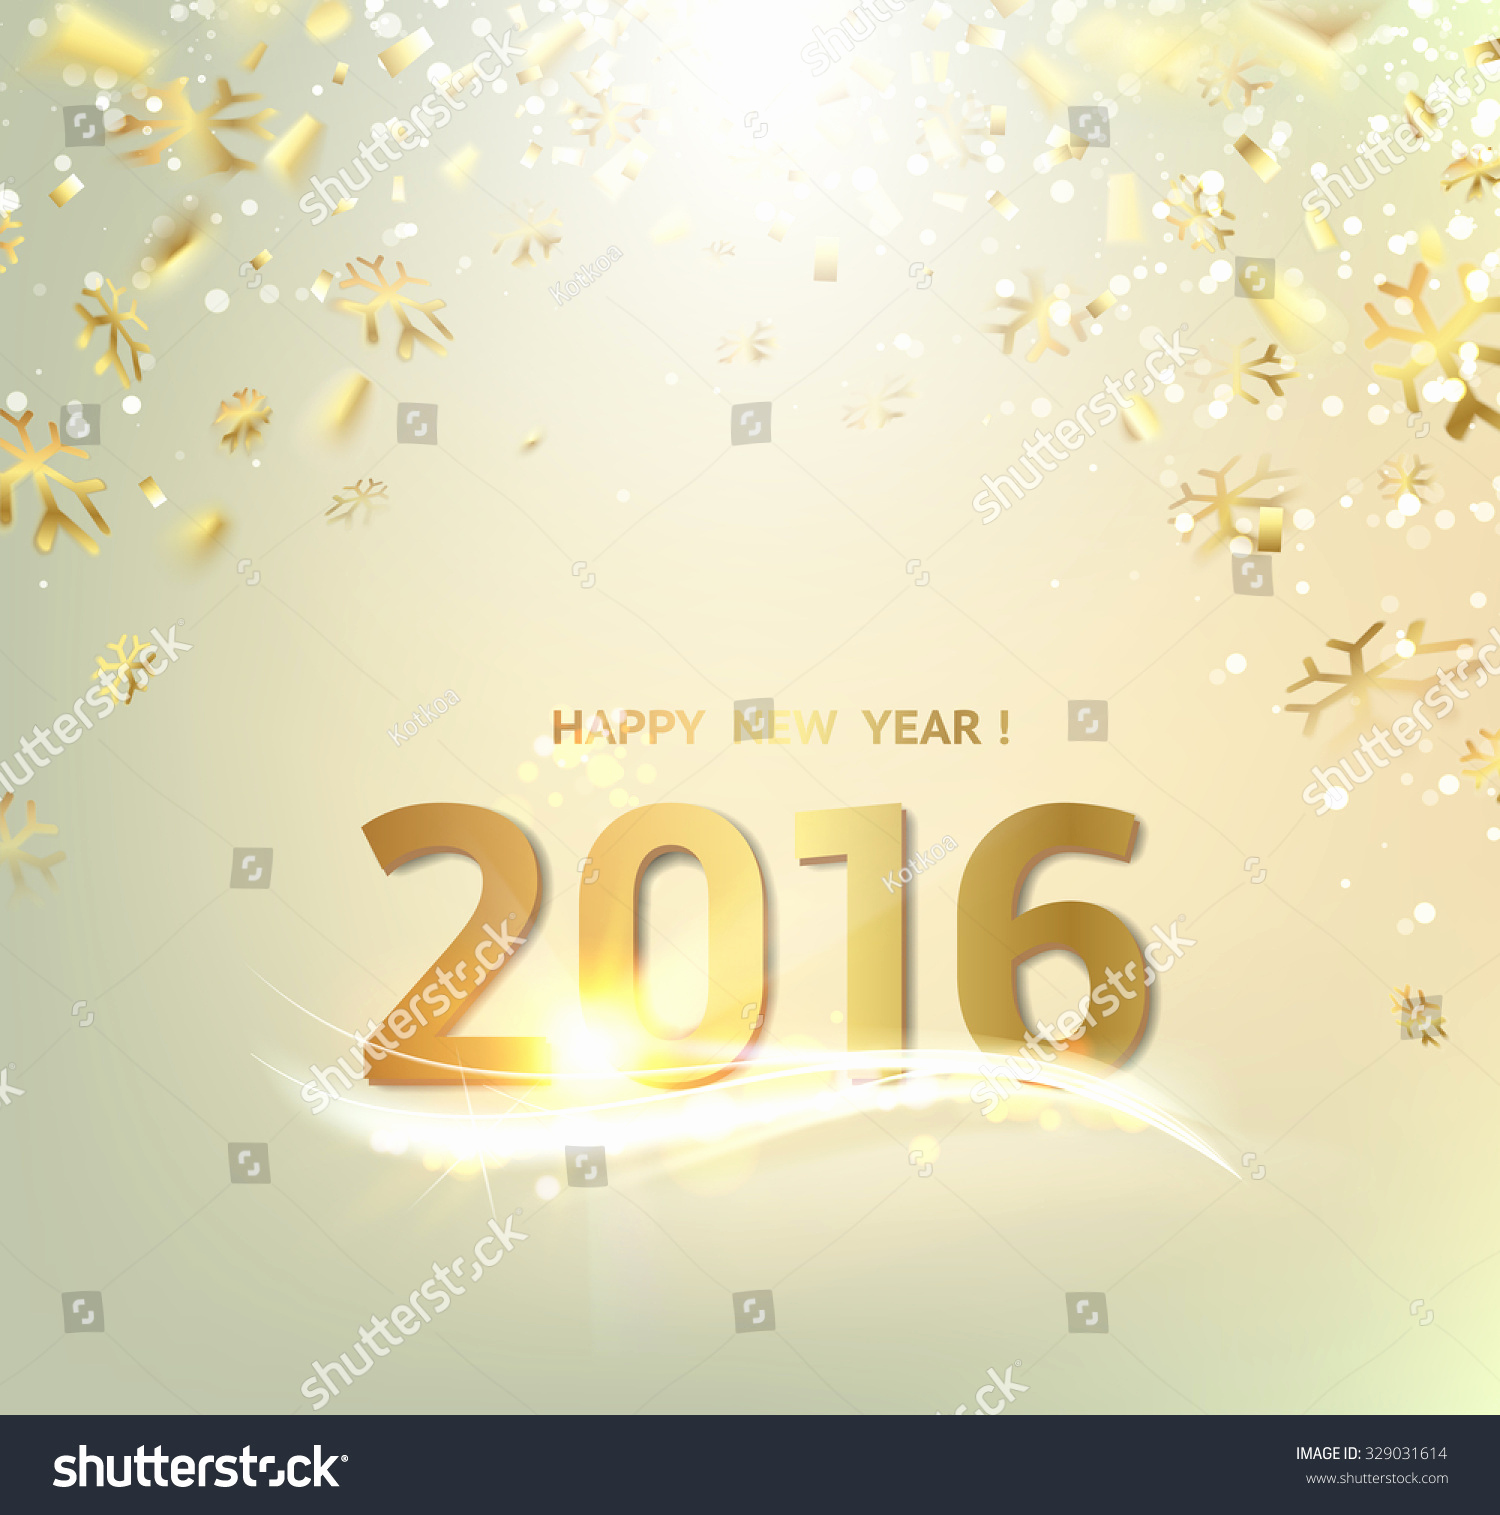 New Year Card Template Unique Happy New Year Card Gold Template Stock Vector